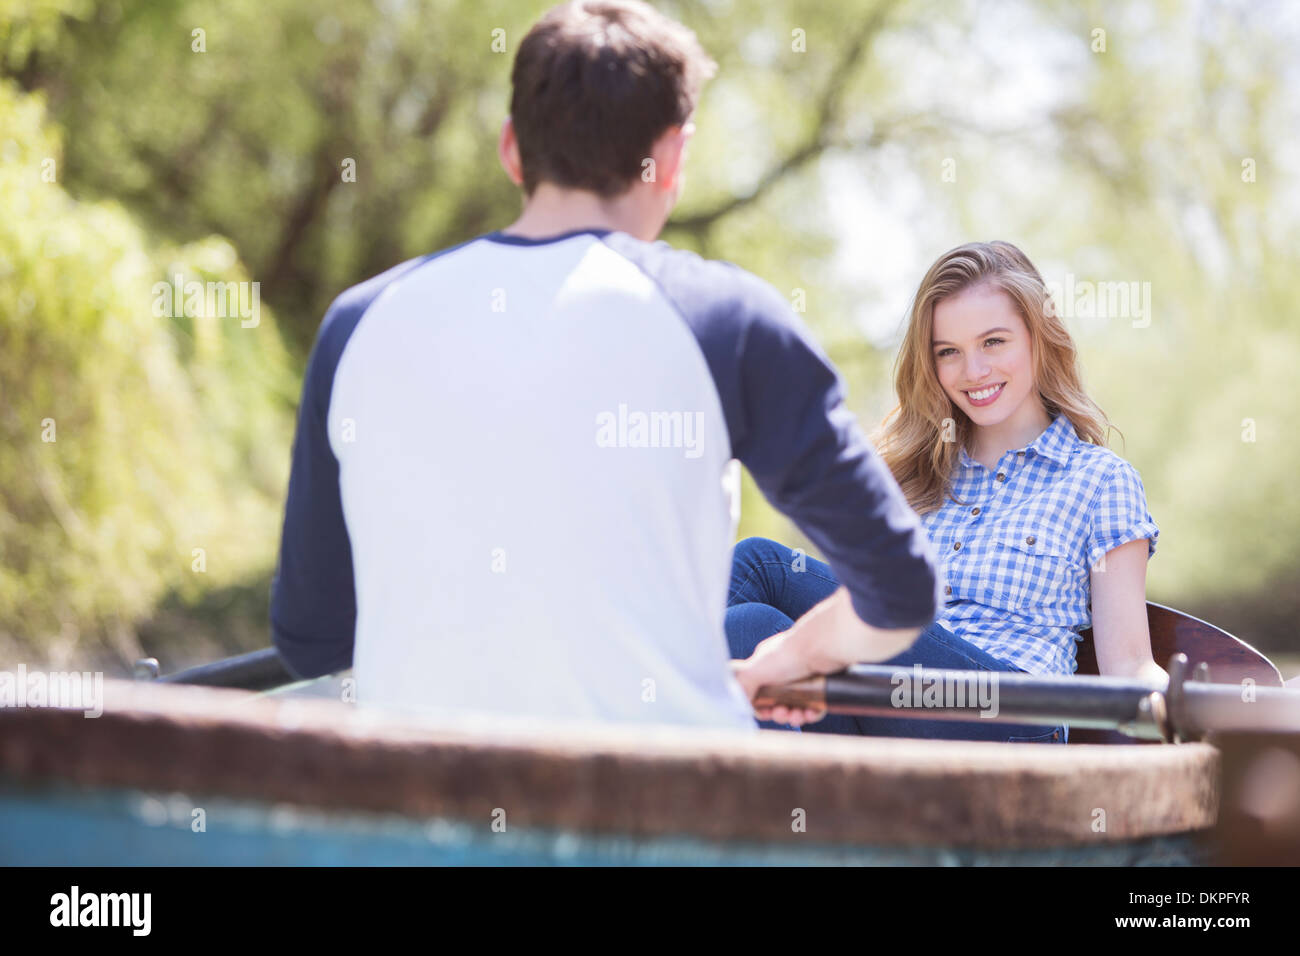 Couple in rowboat - Stock Image